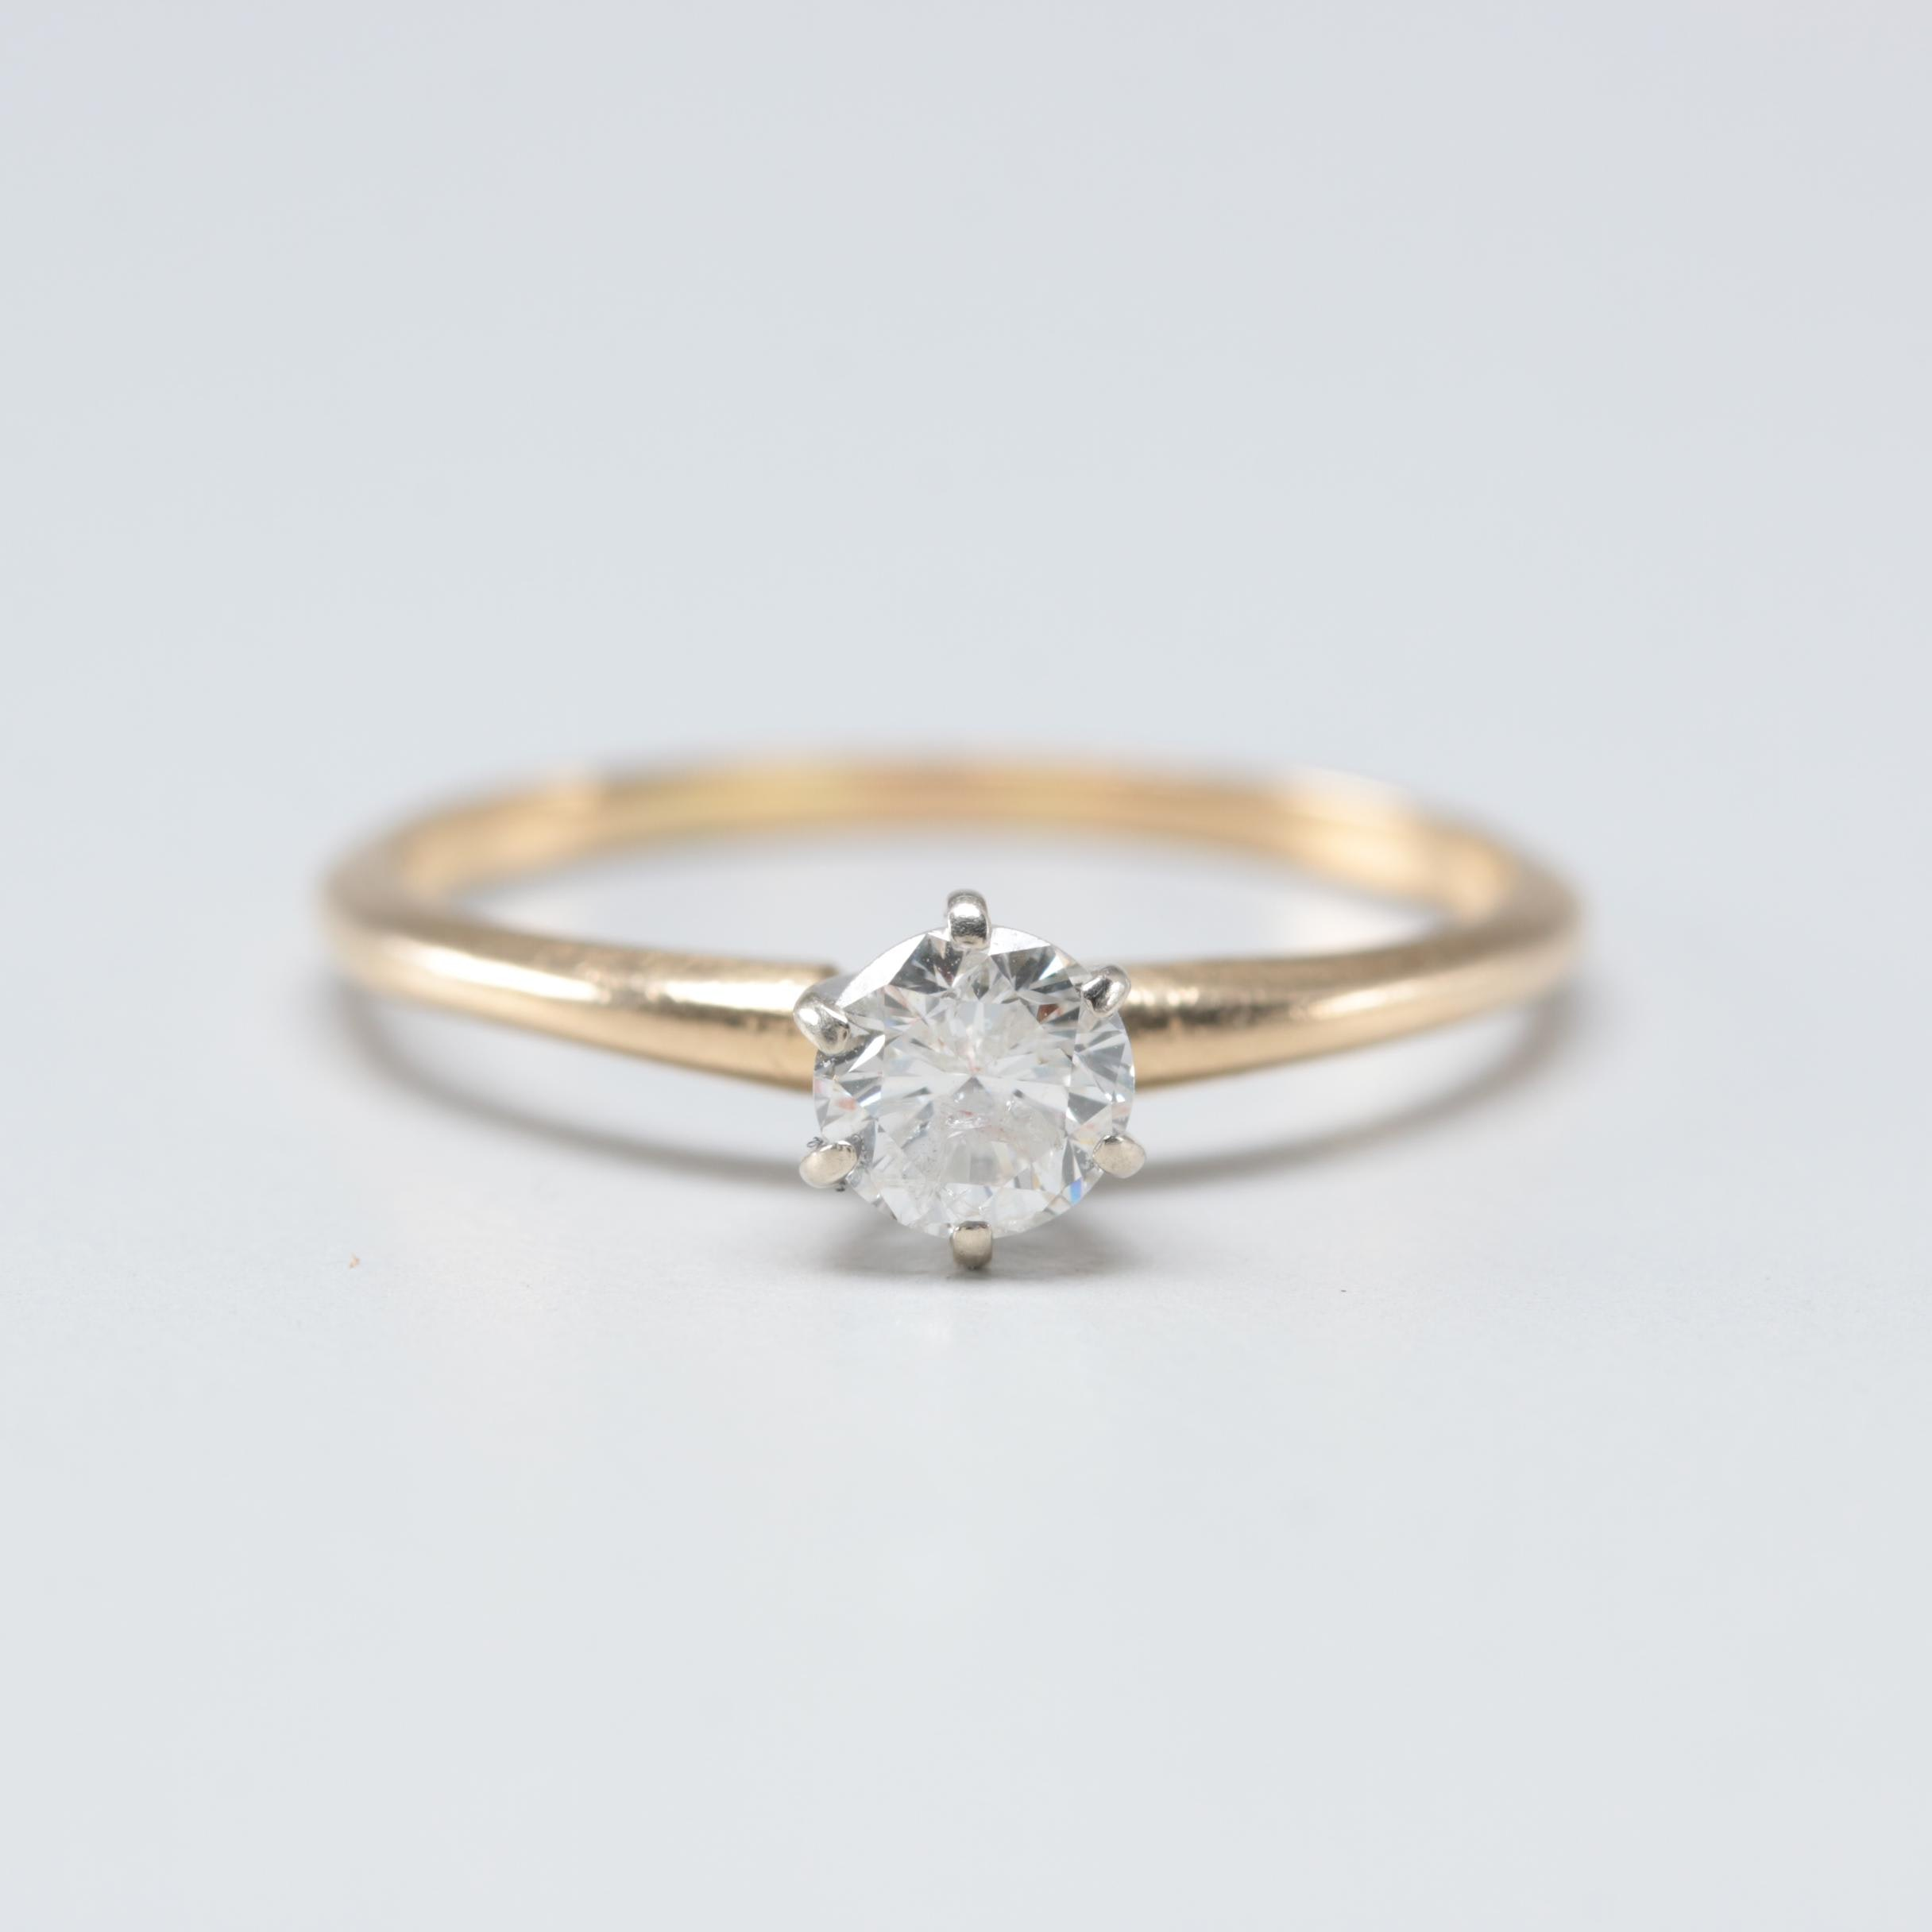 14K Yellow Gold Diamond Solitaire Ring with White Gold Accents